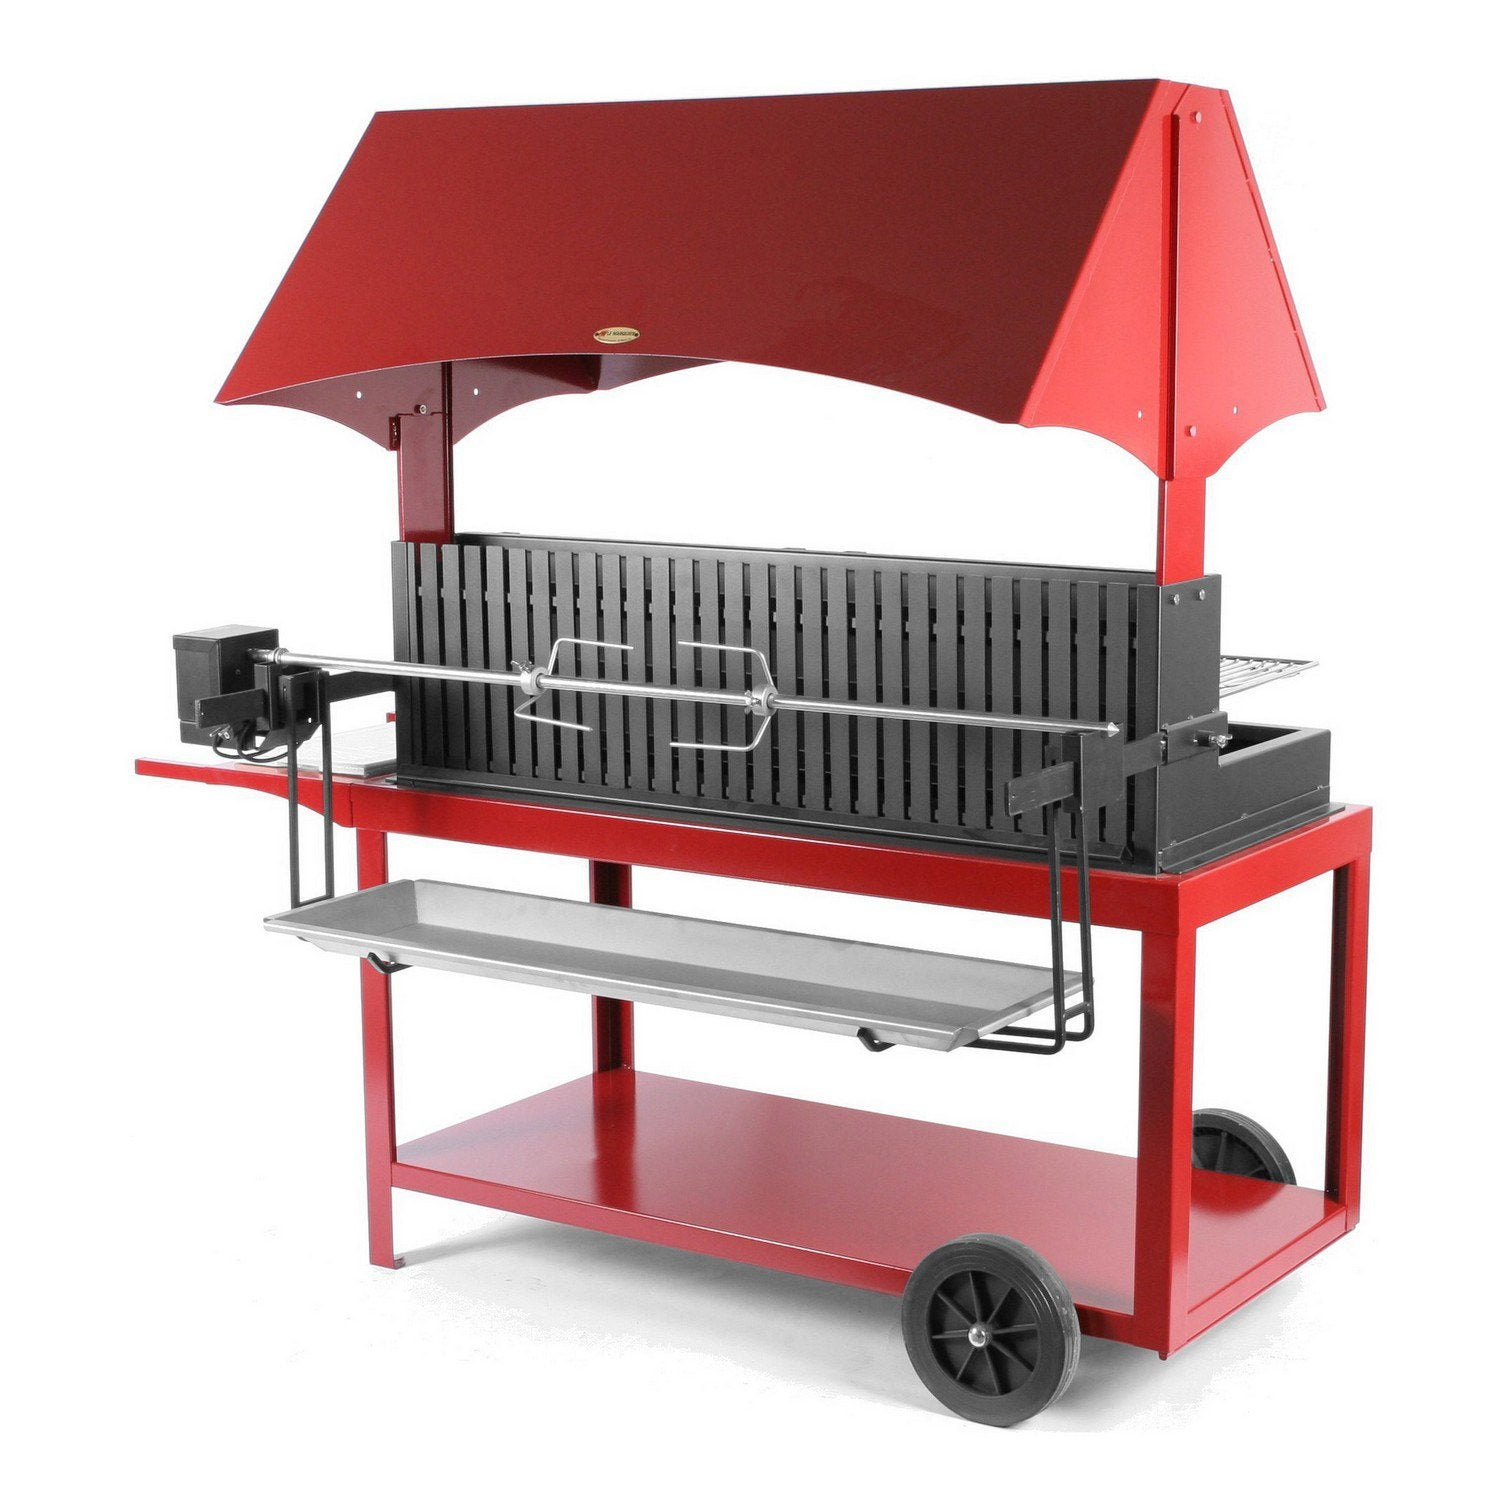 Barbecue charbon pas cher leroy merlin for Barbecue le roy merlin